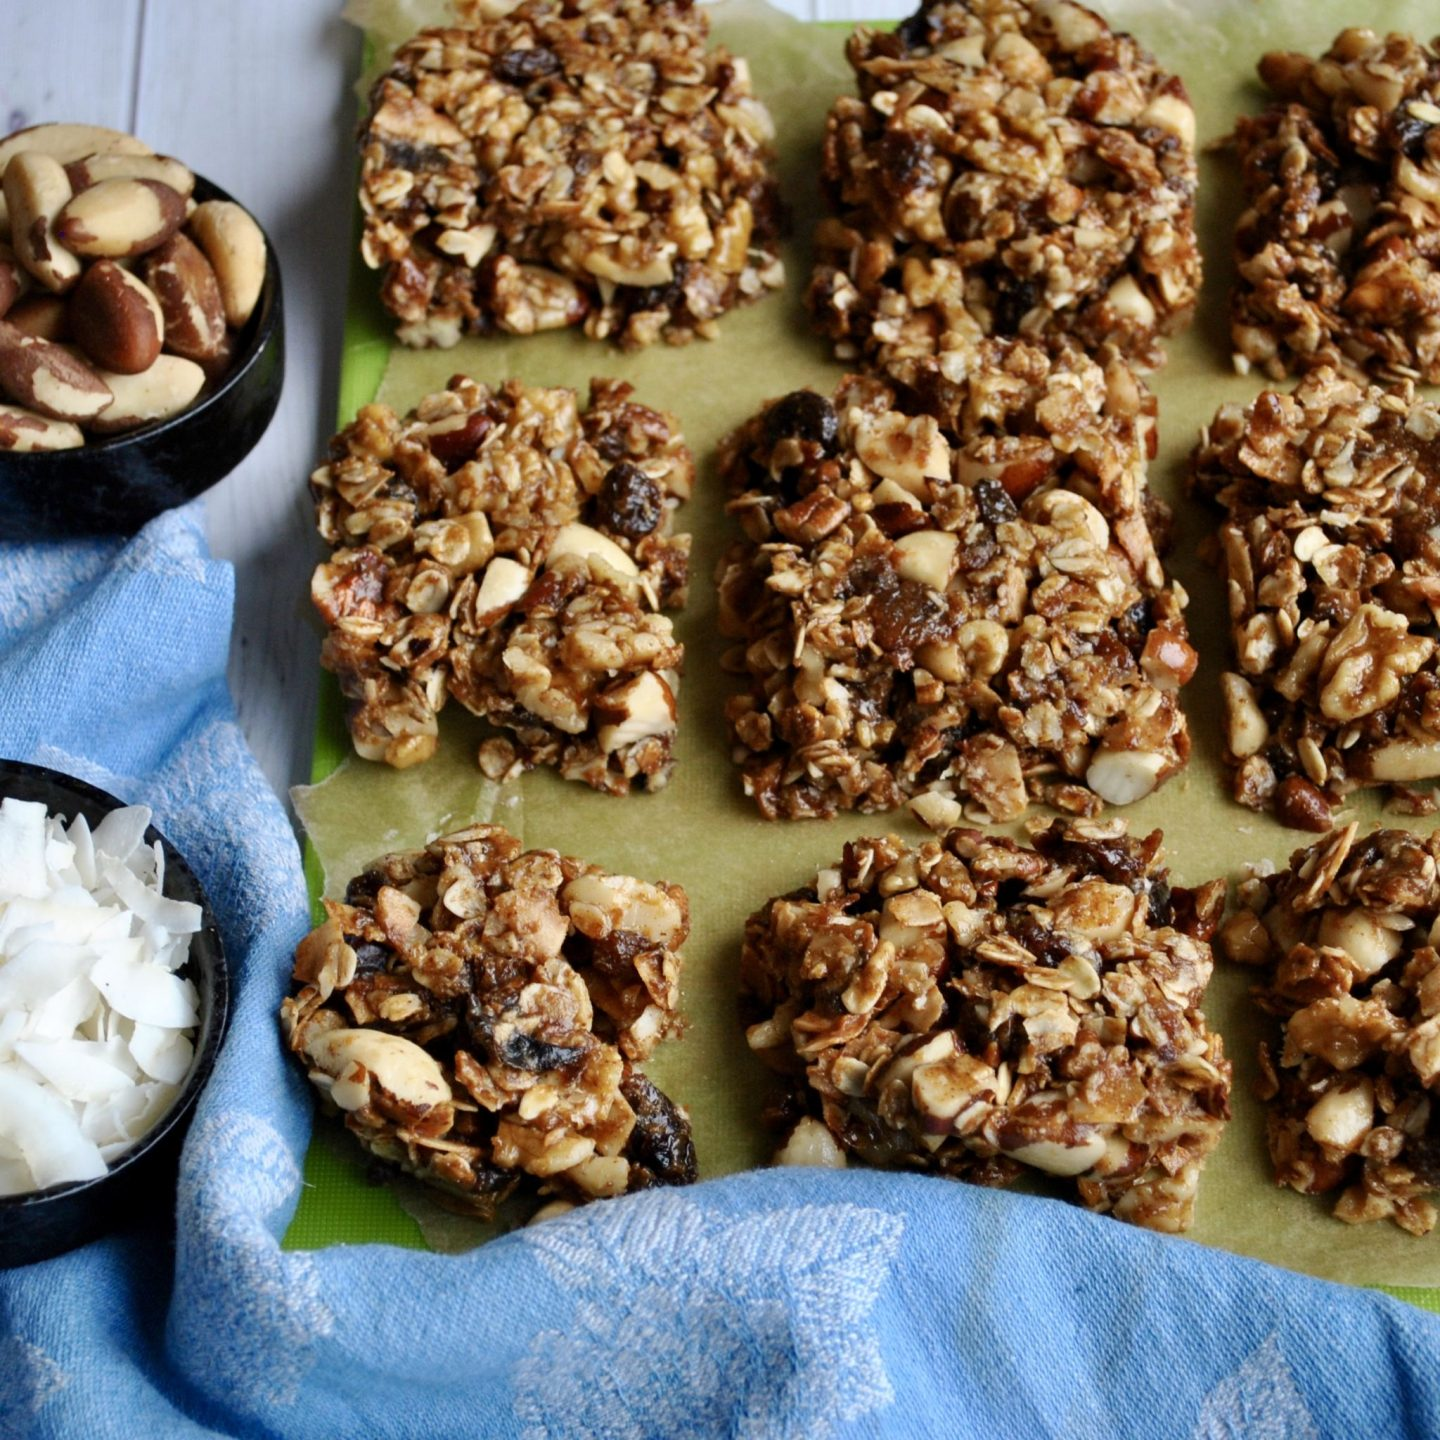 No-Bake Granola Bars (Vegan, Gluten-Free)